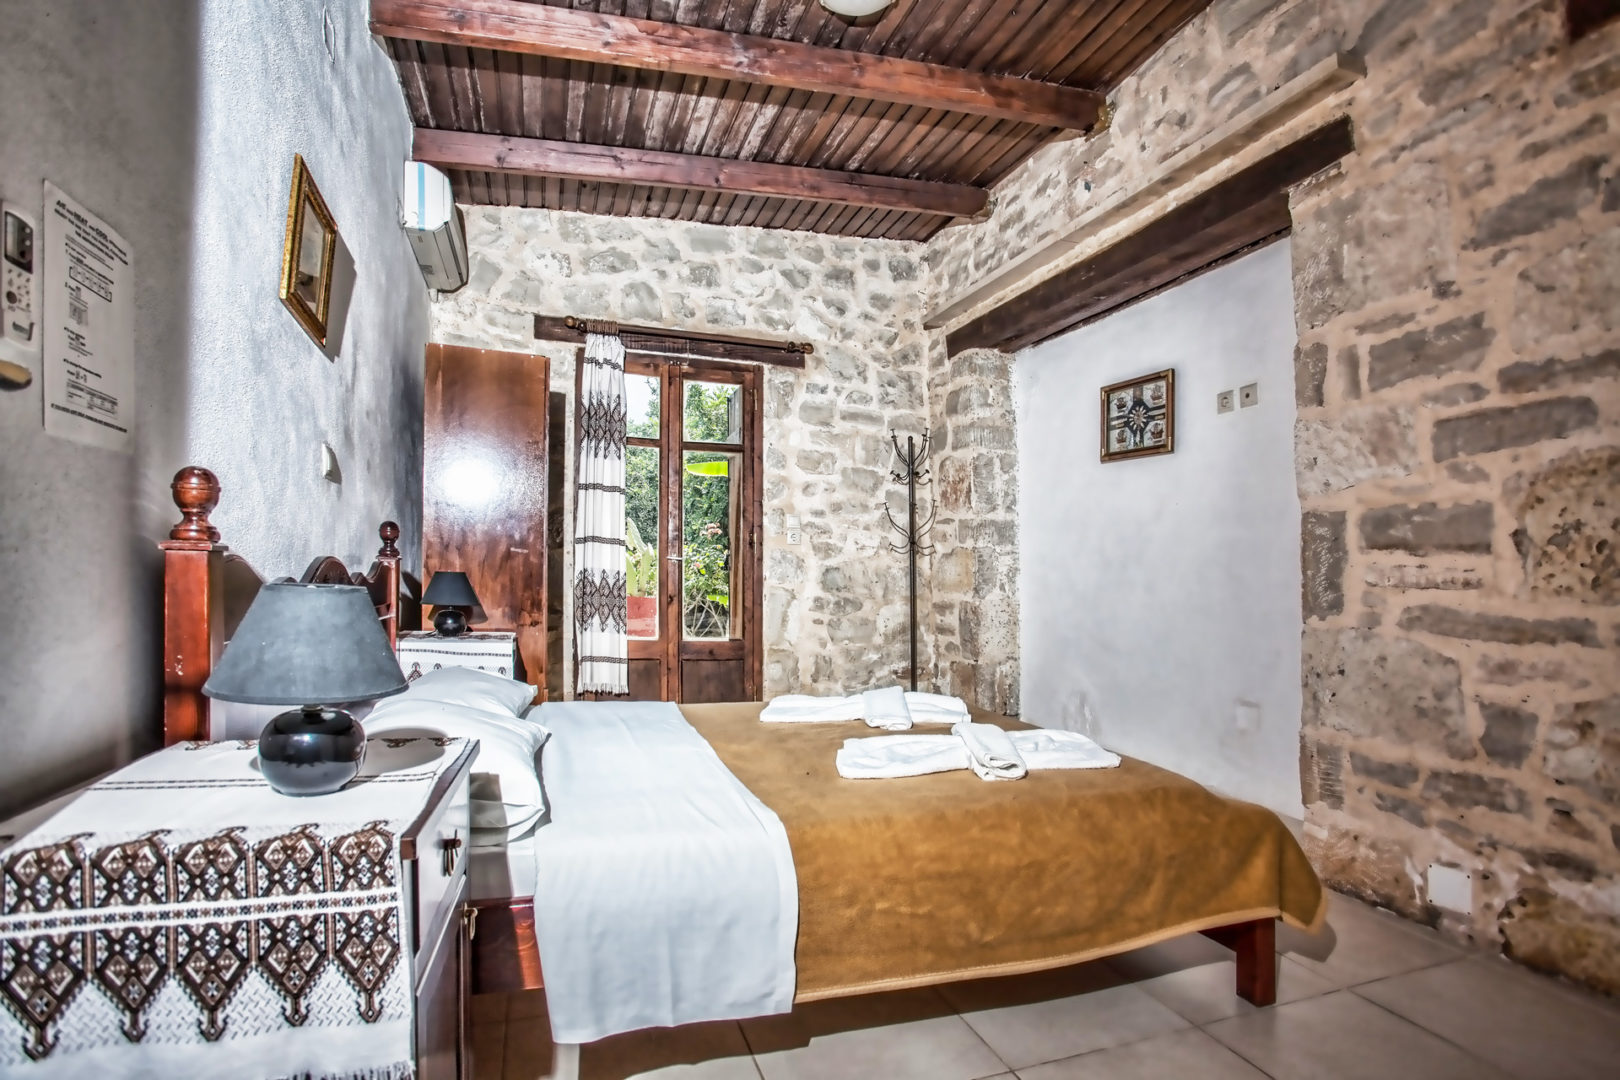 Accommodation in Bali Crete - 2-Bedroom Apartment 3 - Stone Village